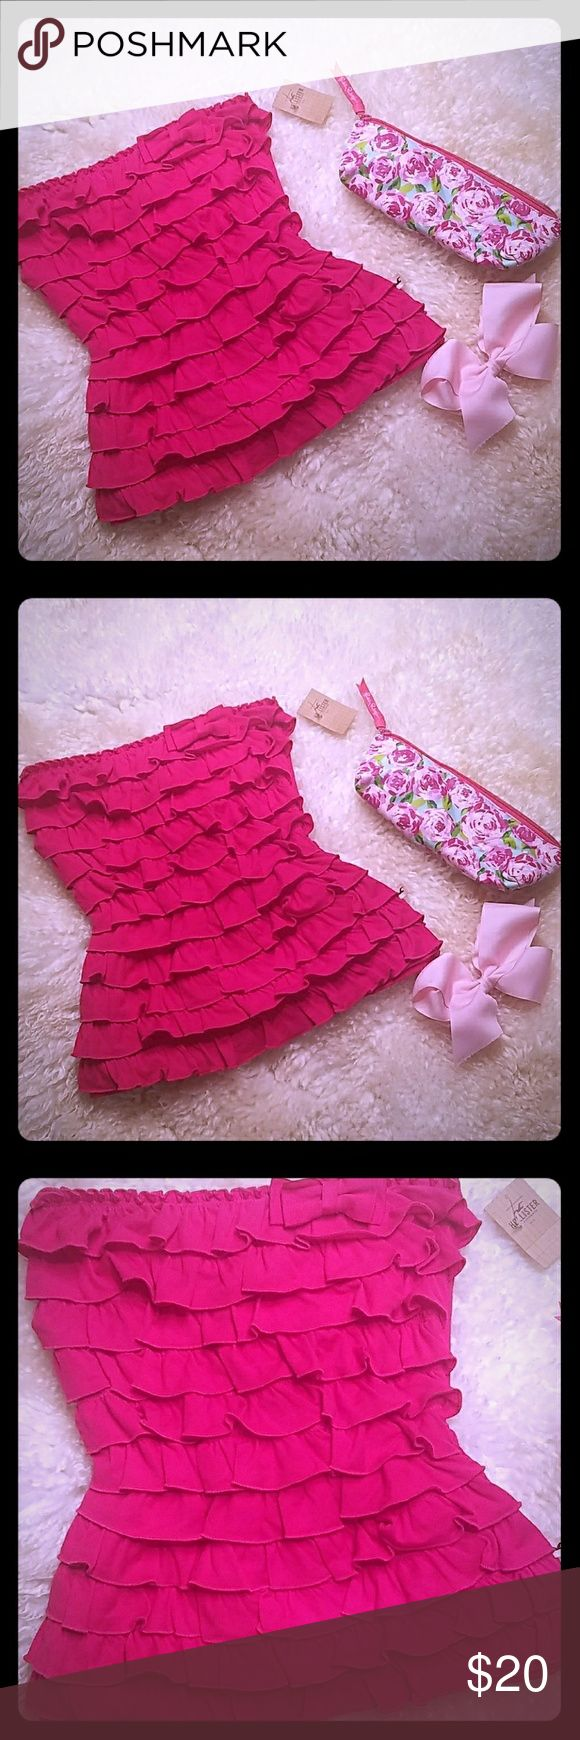 HOLLISTER PINK BOW RUFFLE LAYER STRAPLESS TOP HOLLISTER PINK BOW RUFFLE LAYER STRAPLESS TOP. BRAND NEW WITH TAGS. SMOKE FREE. ABSOLUTELY ADORABLE? SUPER FLIRTY! Hollister Tops